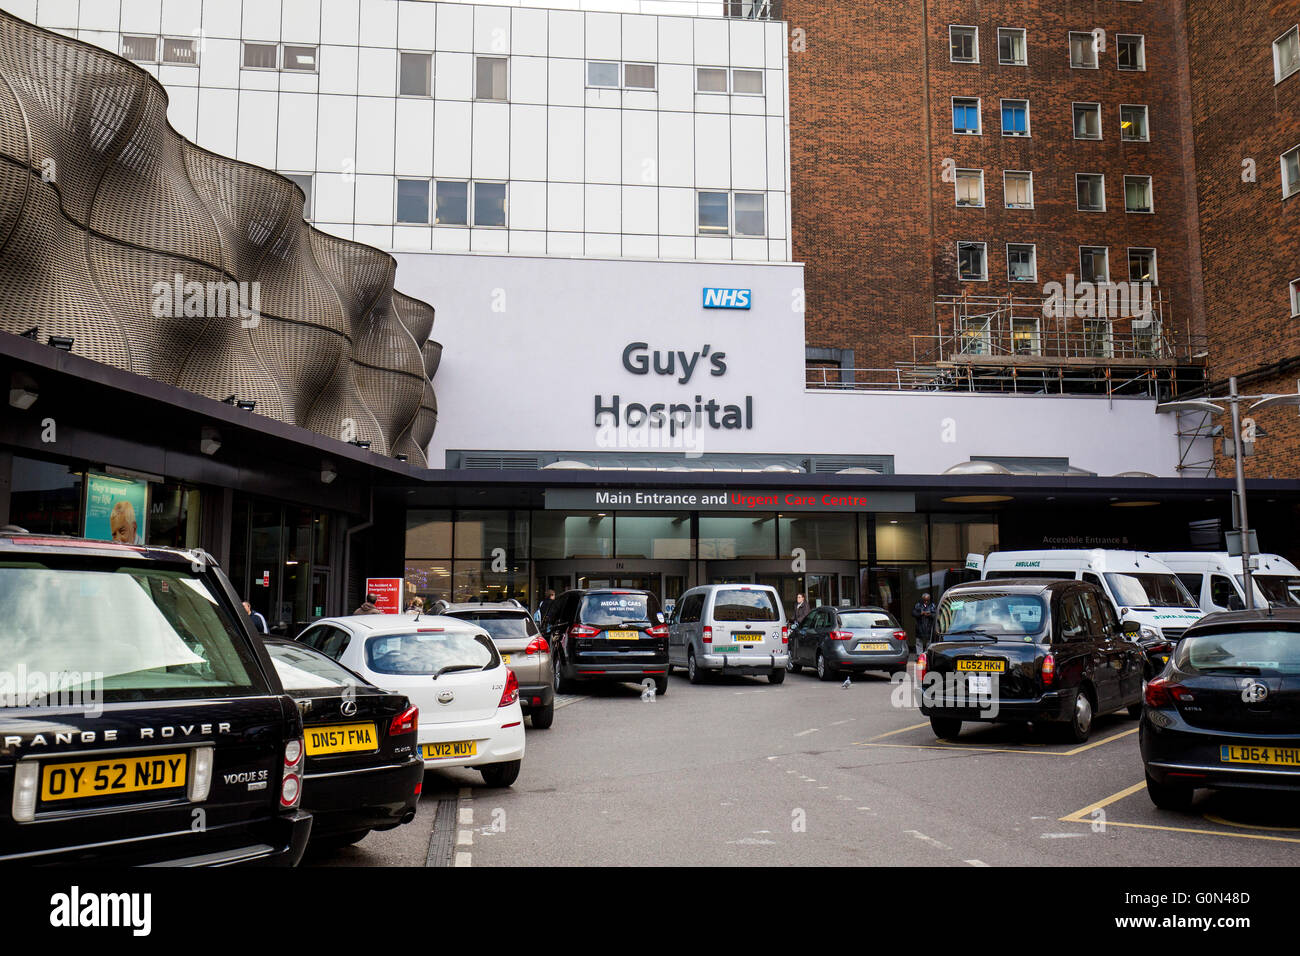 Guy's Hospital entrada principal GV NHS Imagen De Stock